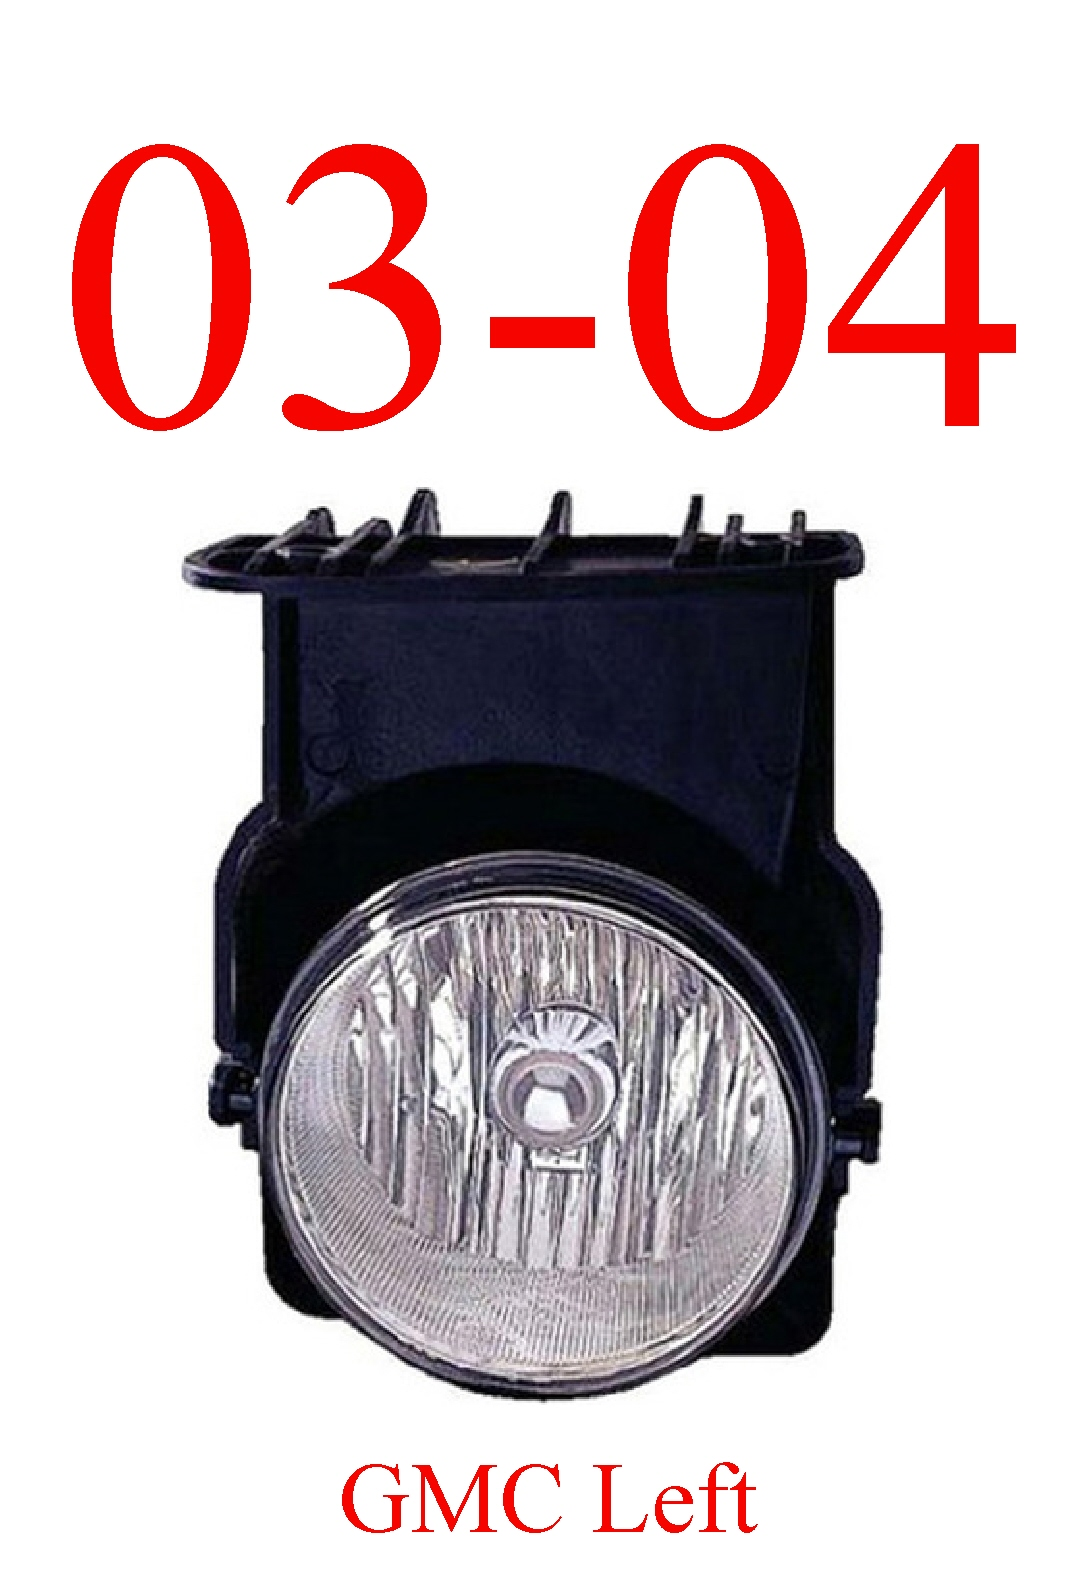 03-04 GMC Truck Left Fog Light Assembly